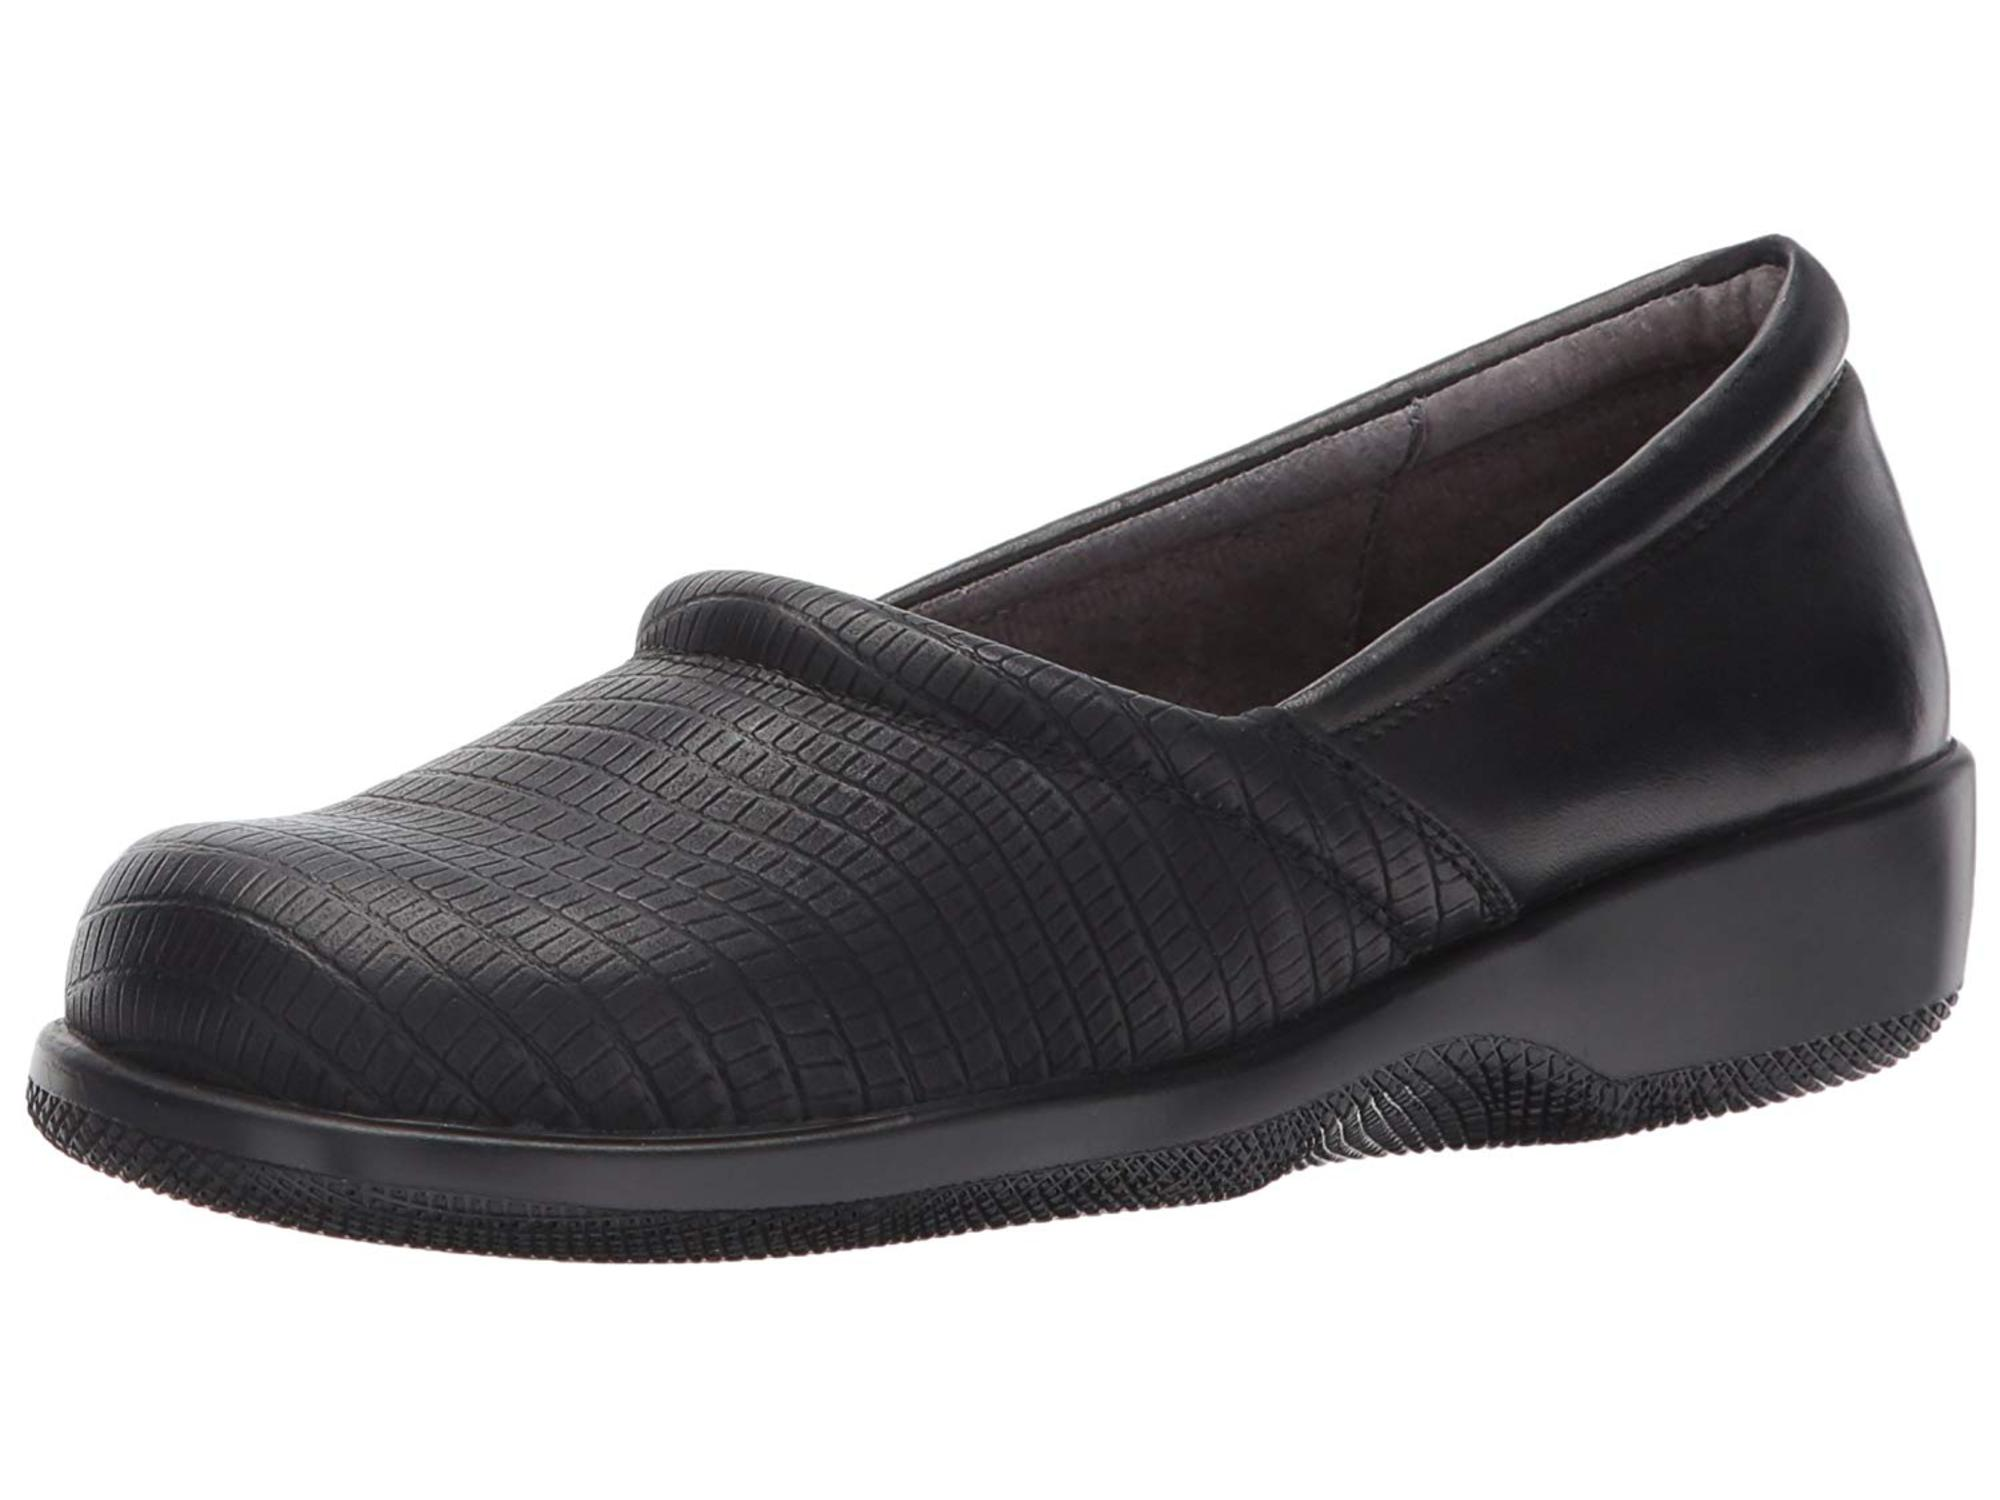 Man's/Woman's:Softwalk Women's Adora Adora Adora Flat:Various goods 52b22b